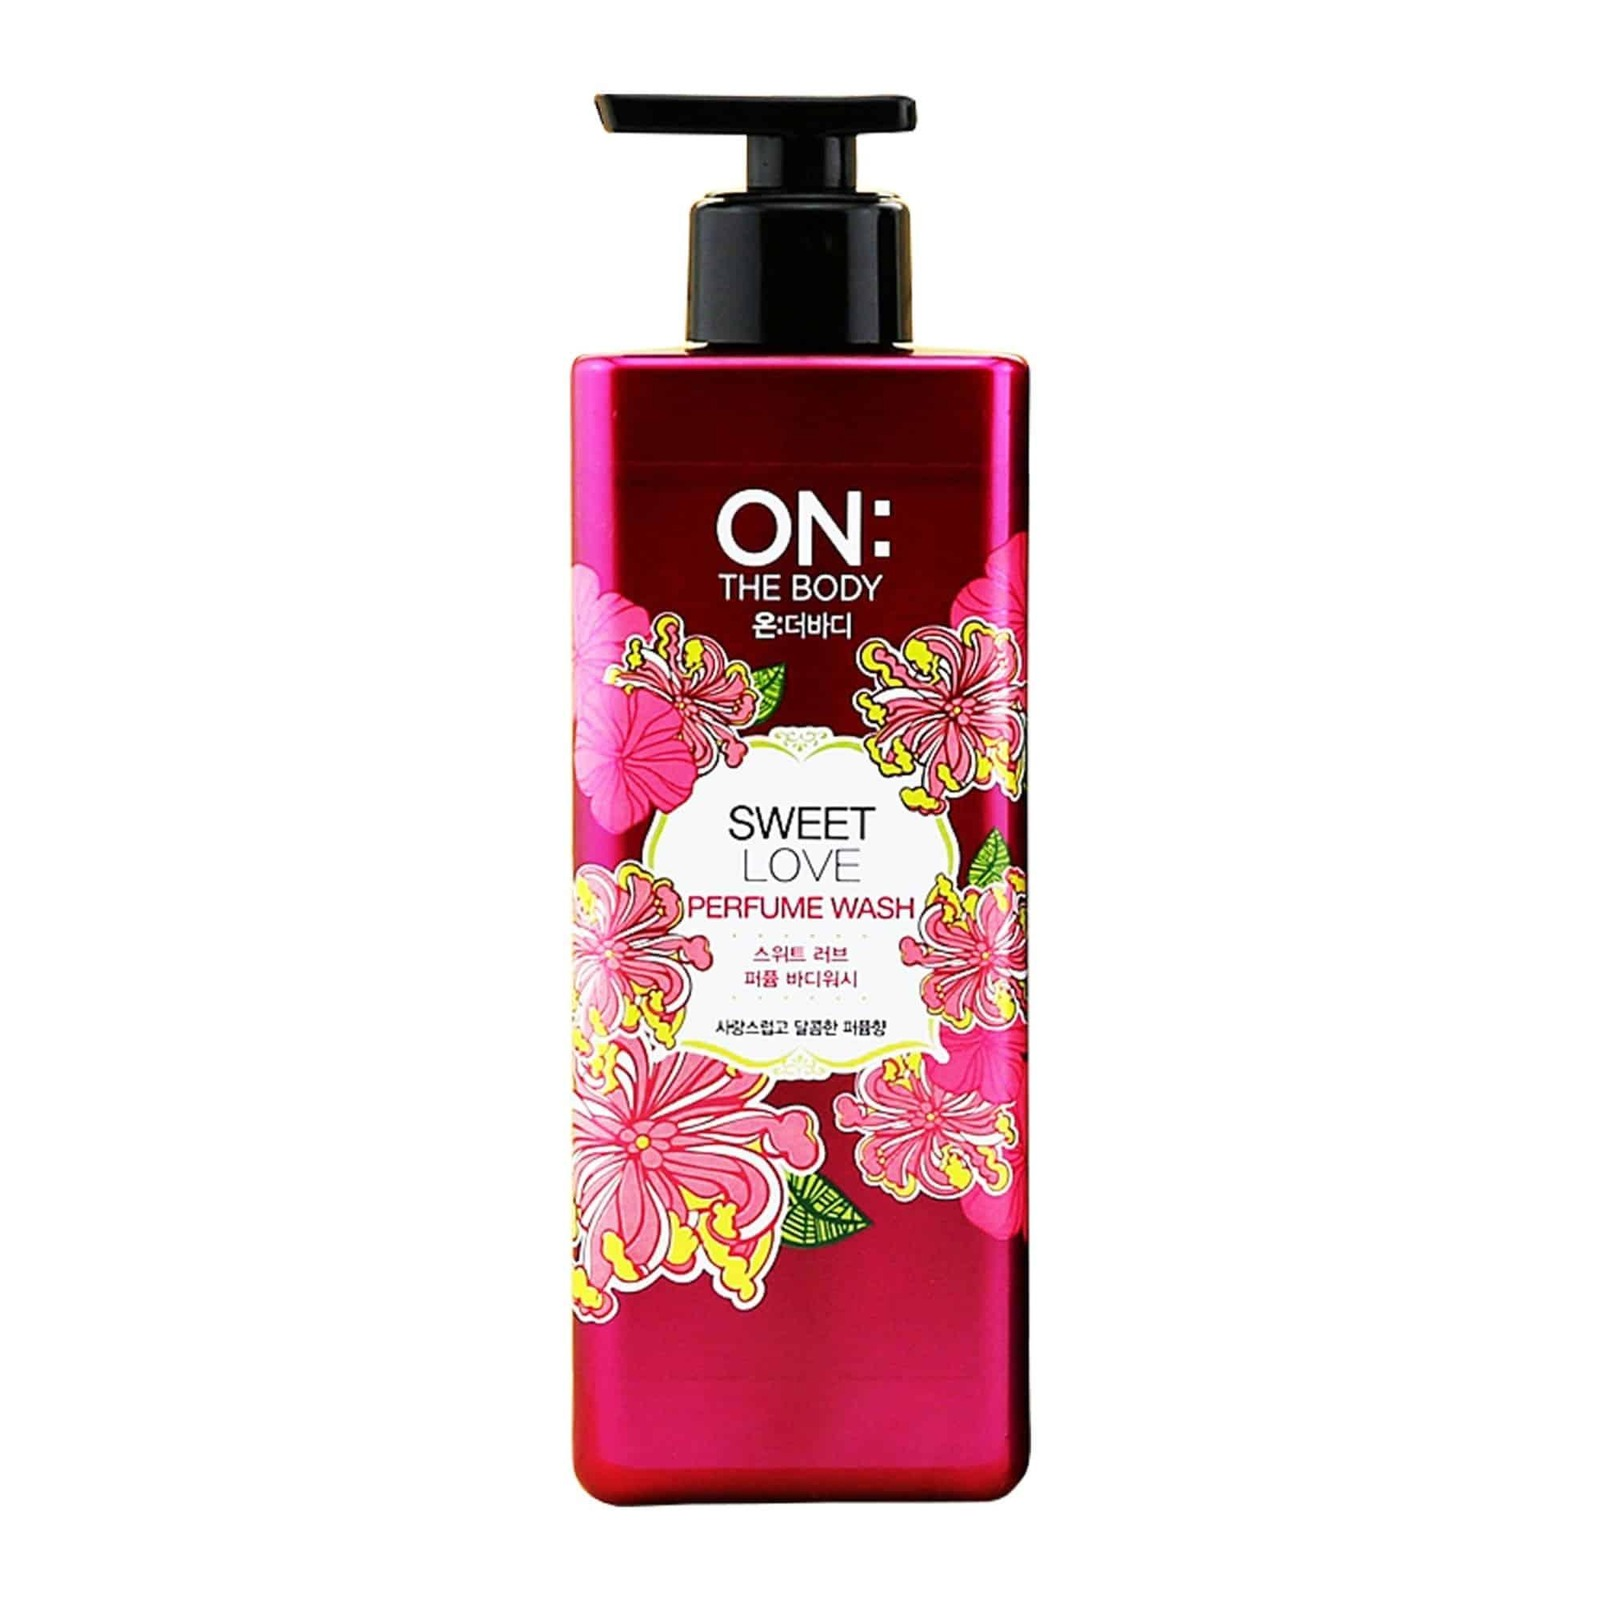 On The Body Sweet Love Perfume Body Wash